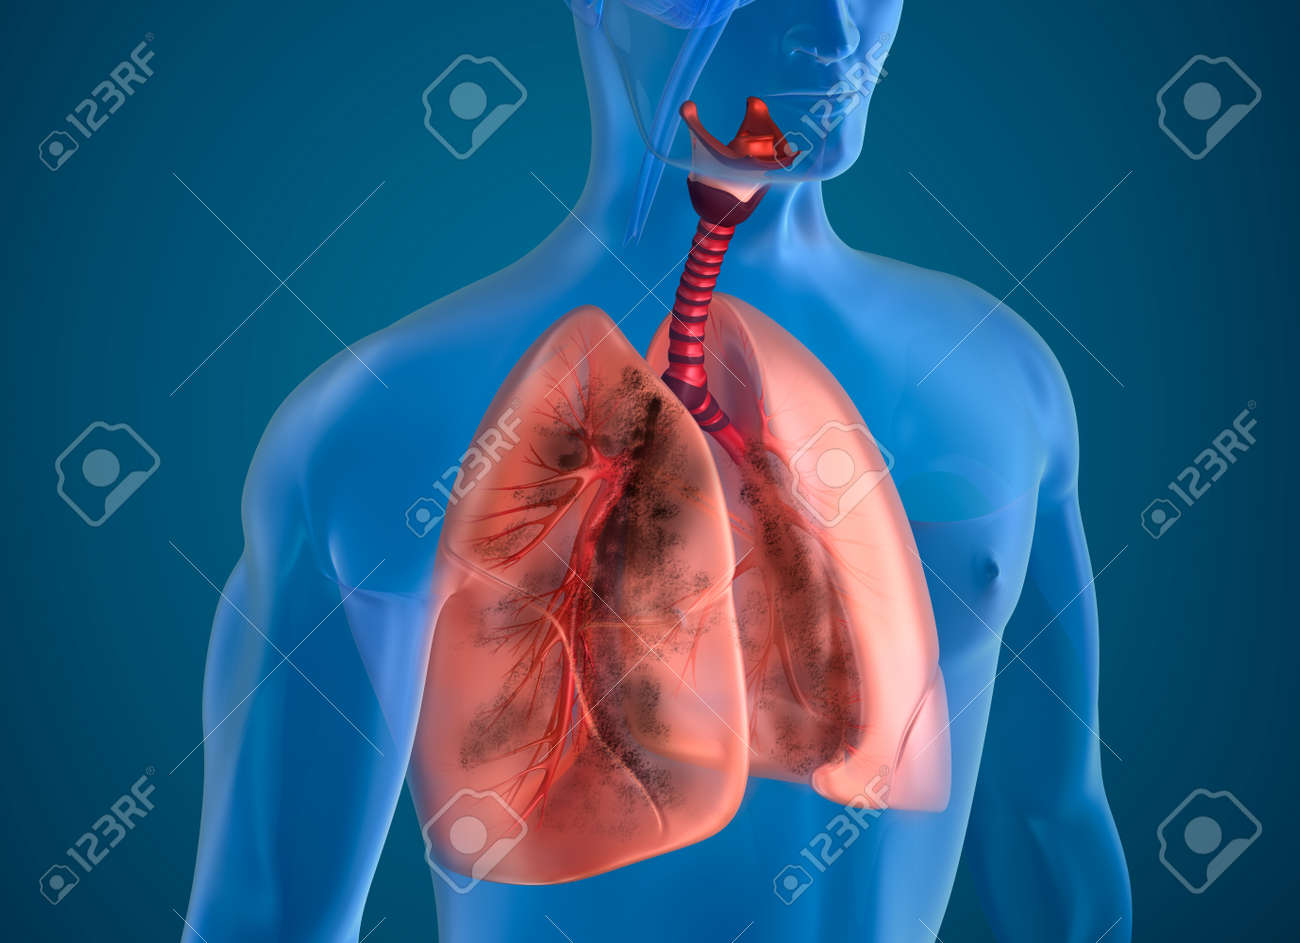 Diseased lungs x-ray view Stock Photo - 46737719